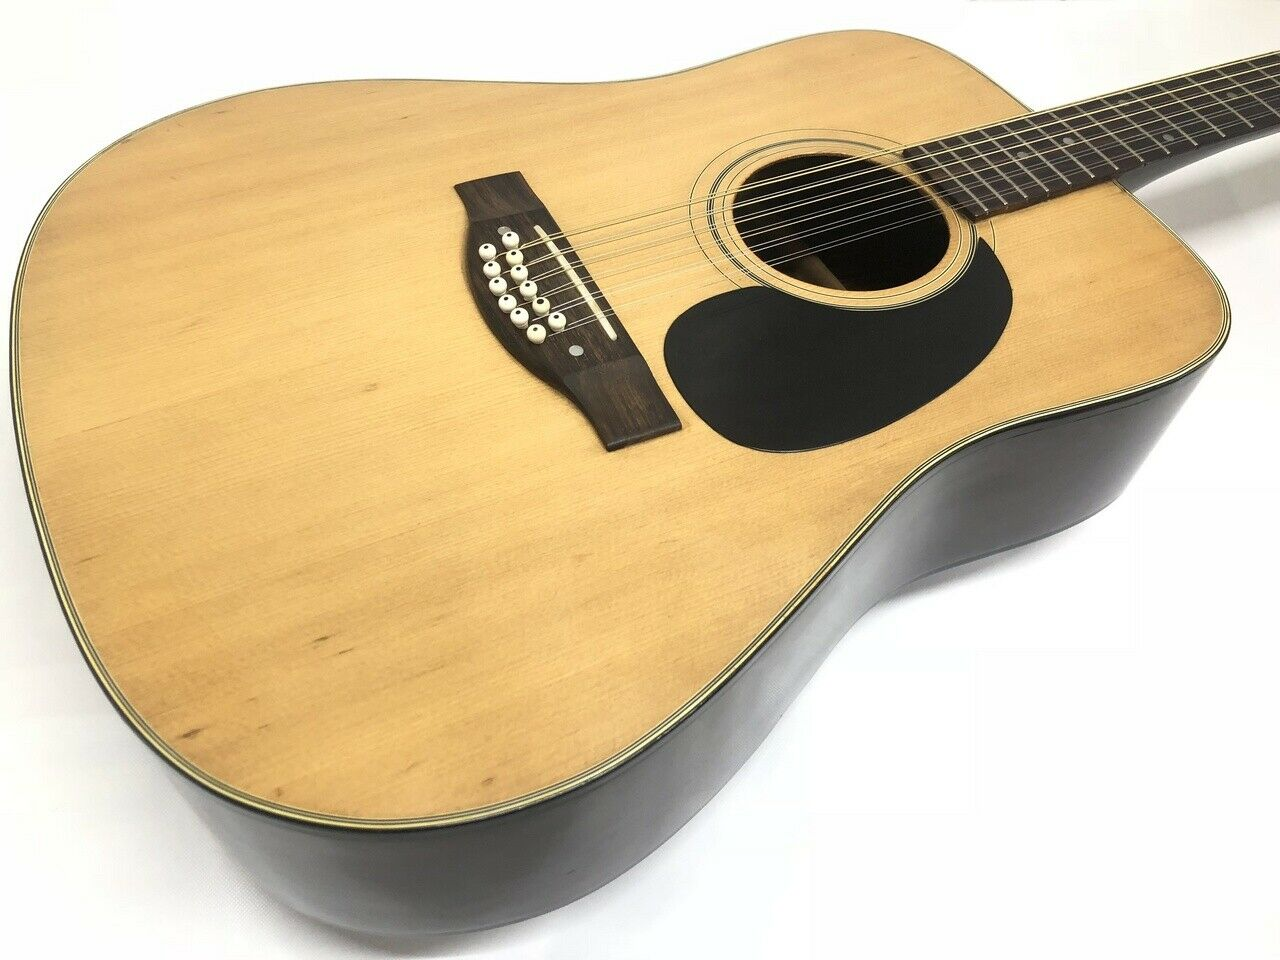 Greco W-160 acoustic guitar Japan rare beautiful vintage popular EMS F   S